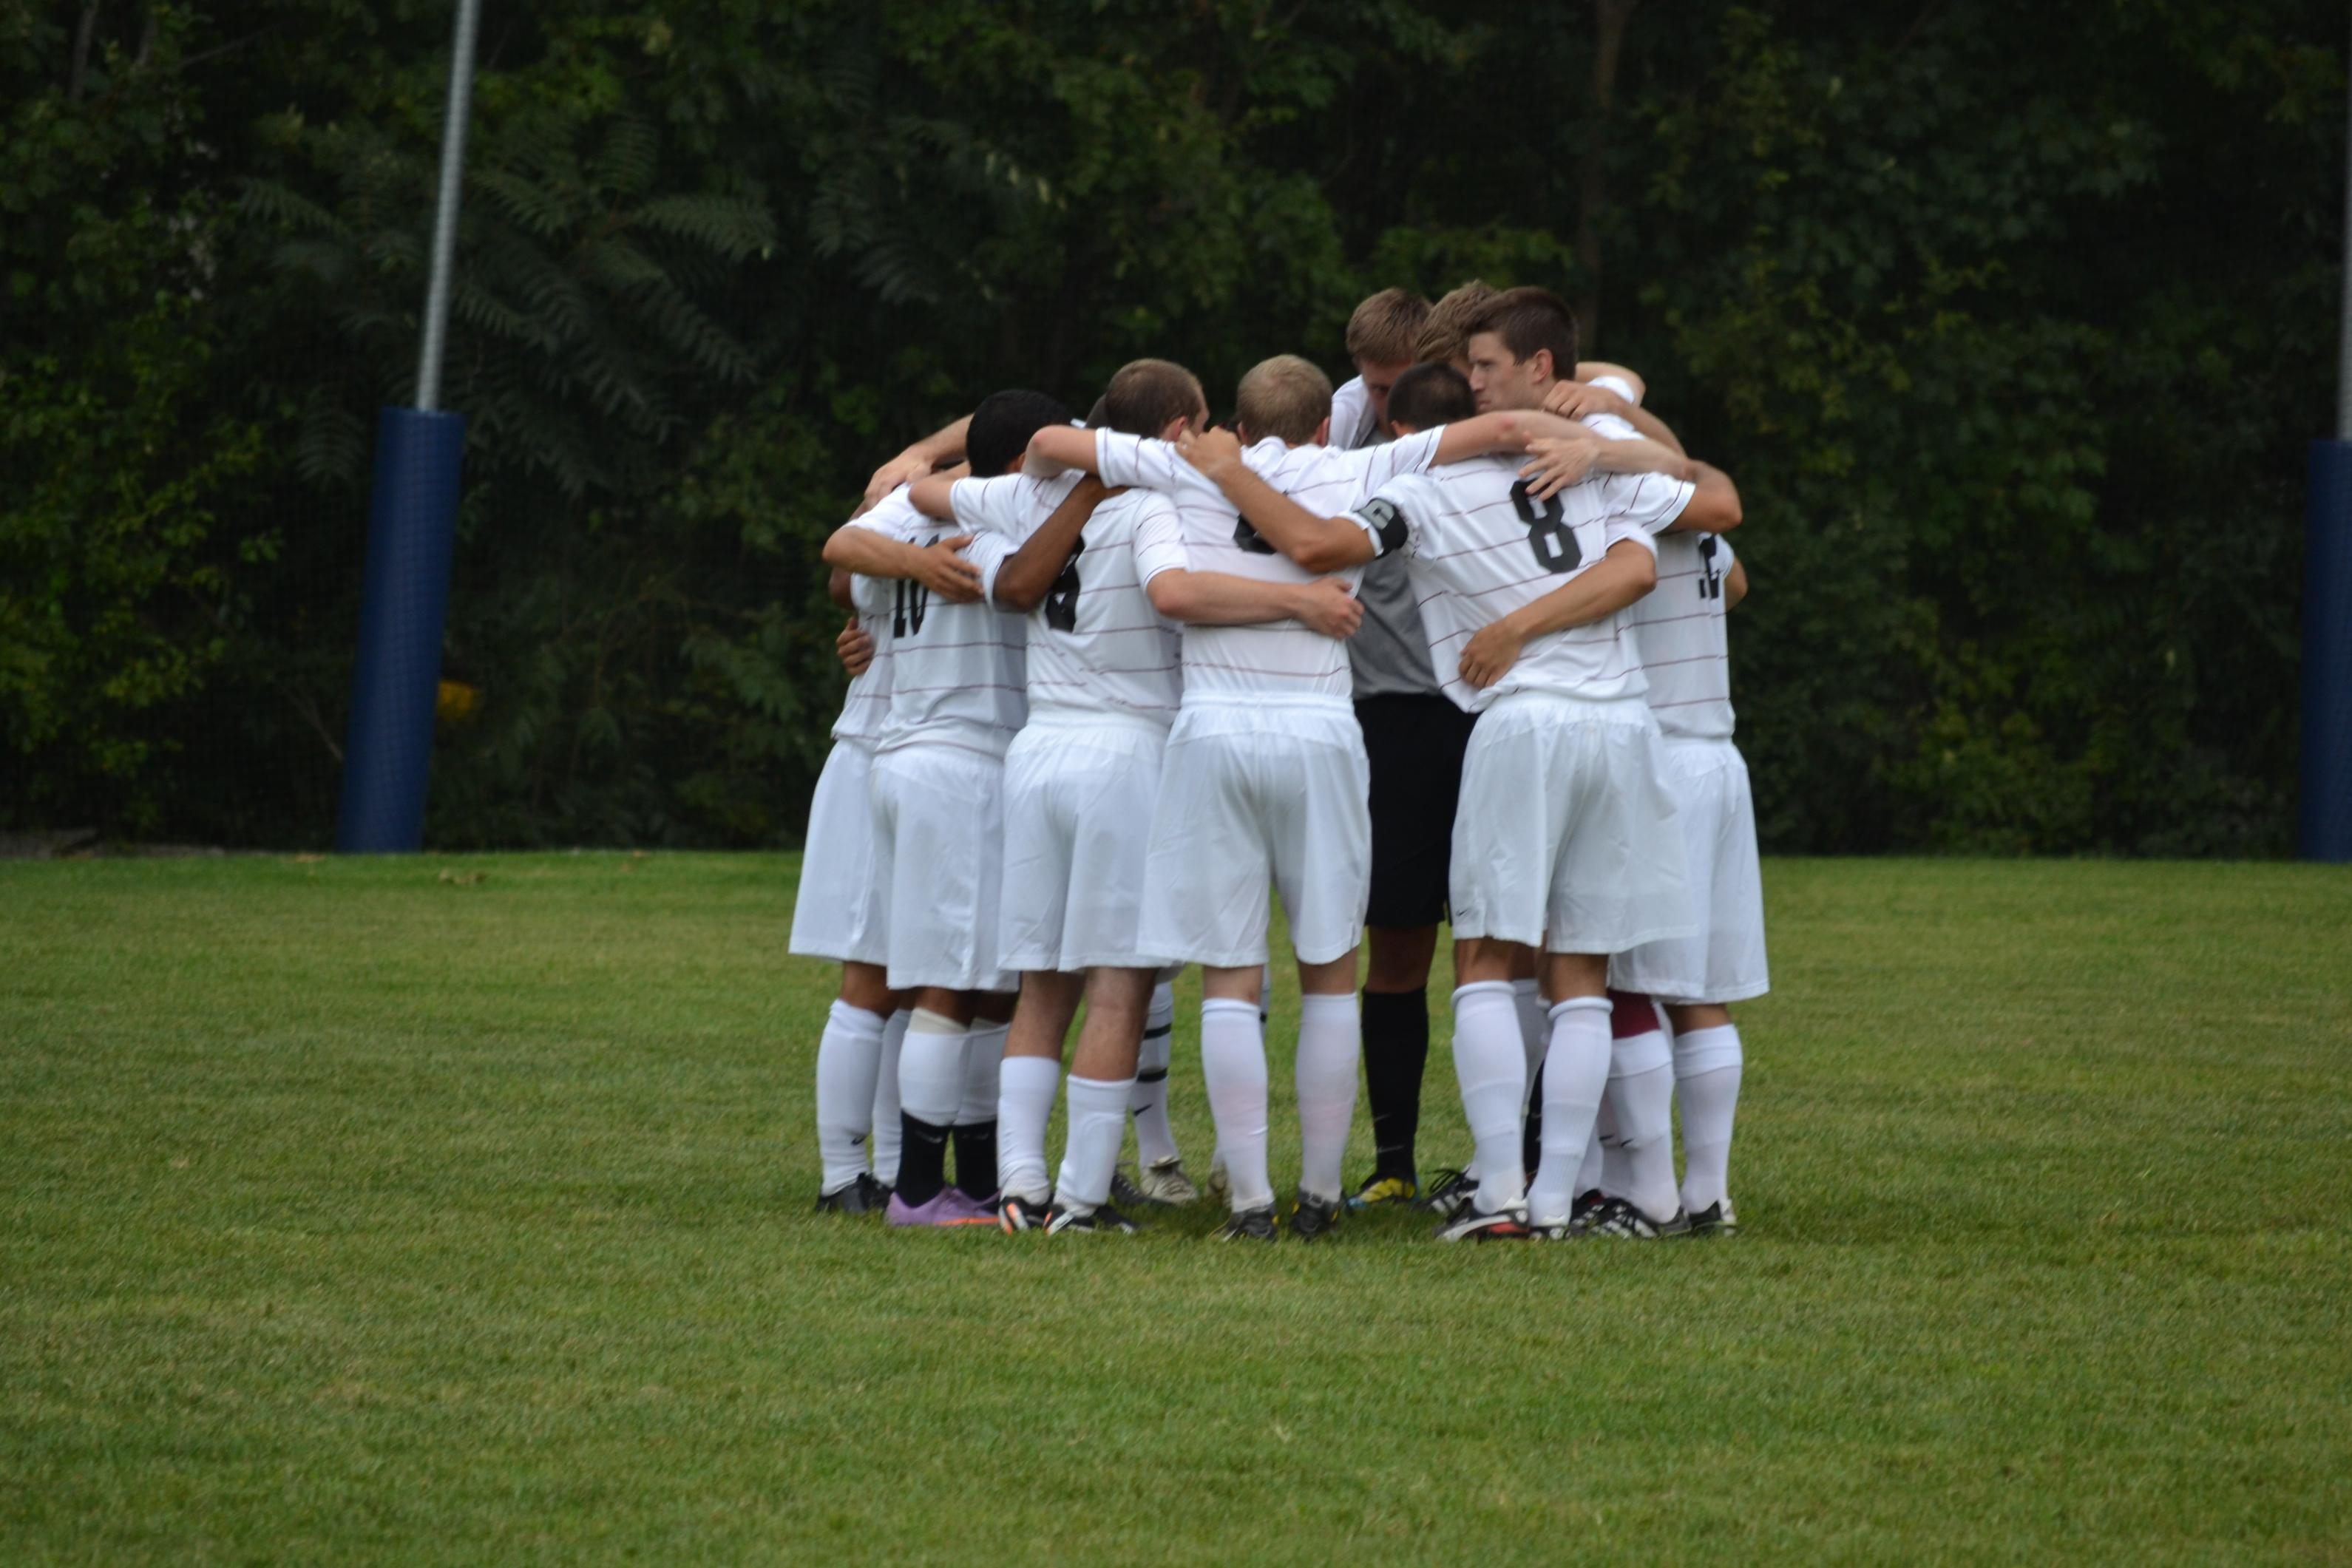 Men's Soccer Remains Undefeated With 3-1 Victory At Gordon